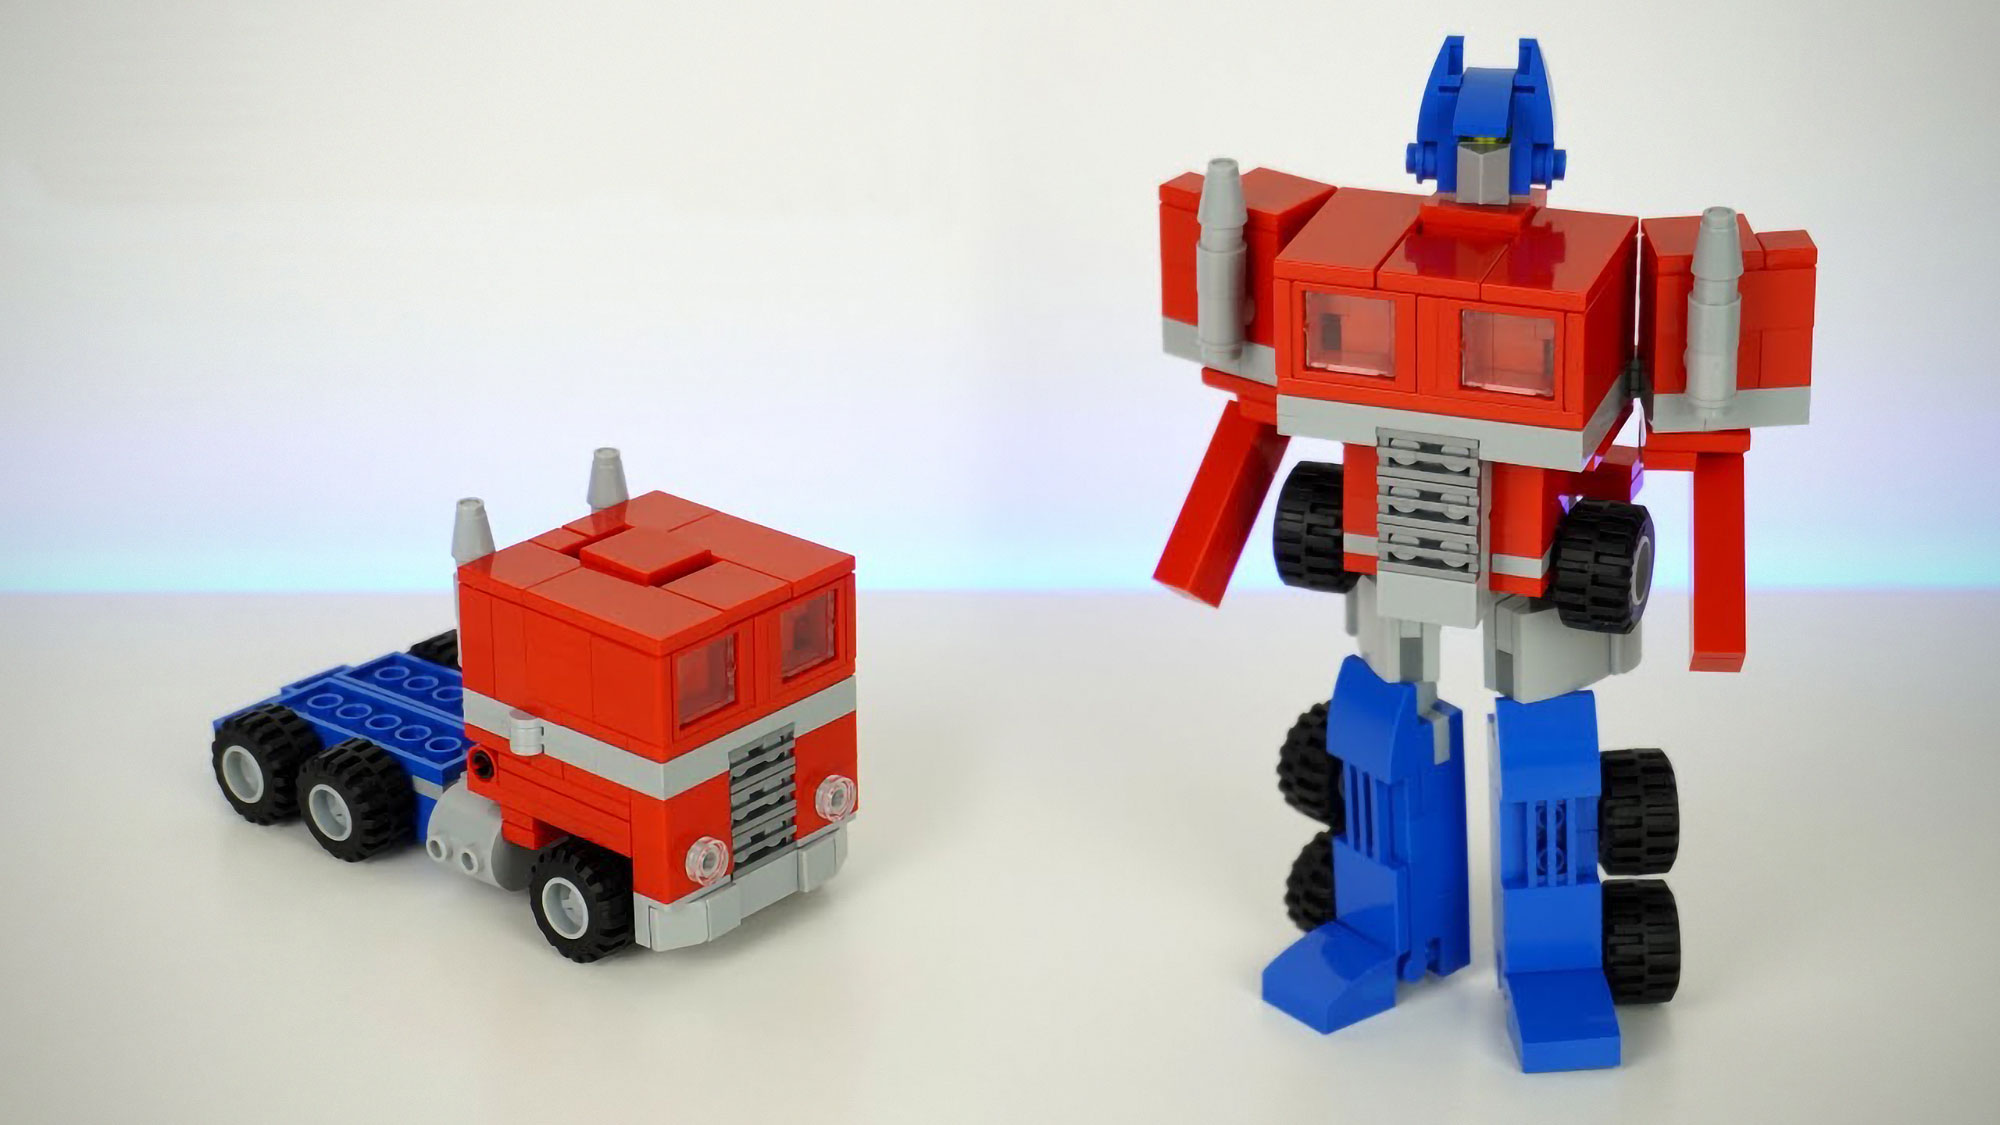 Building A Transforming Transformers Out of LEGO